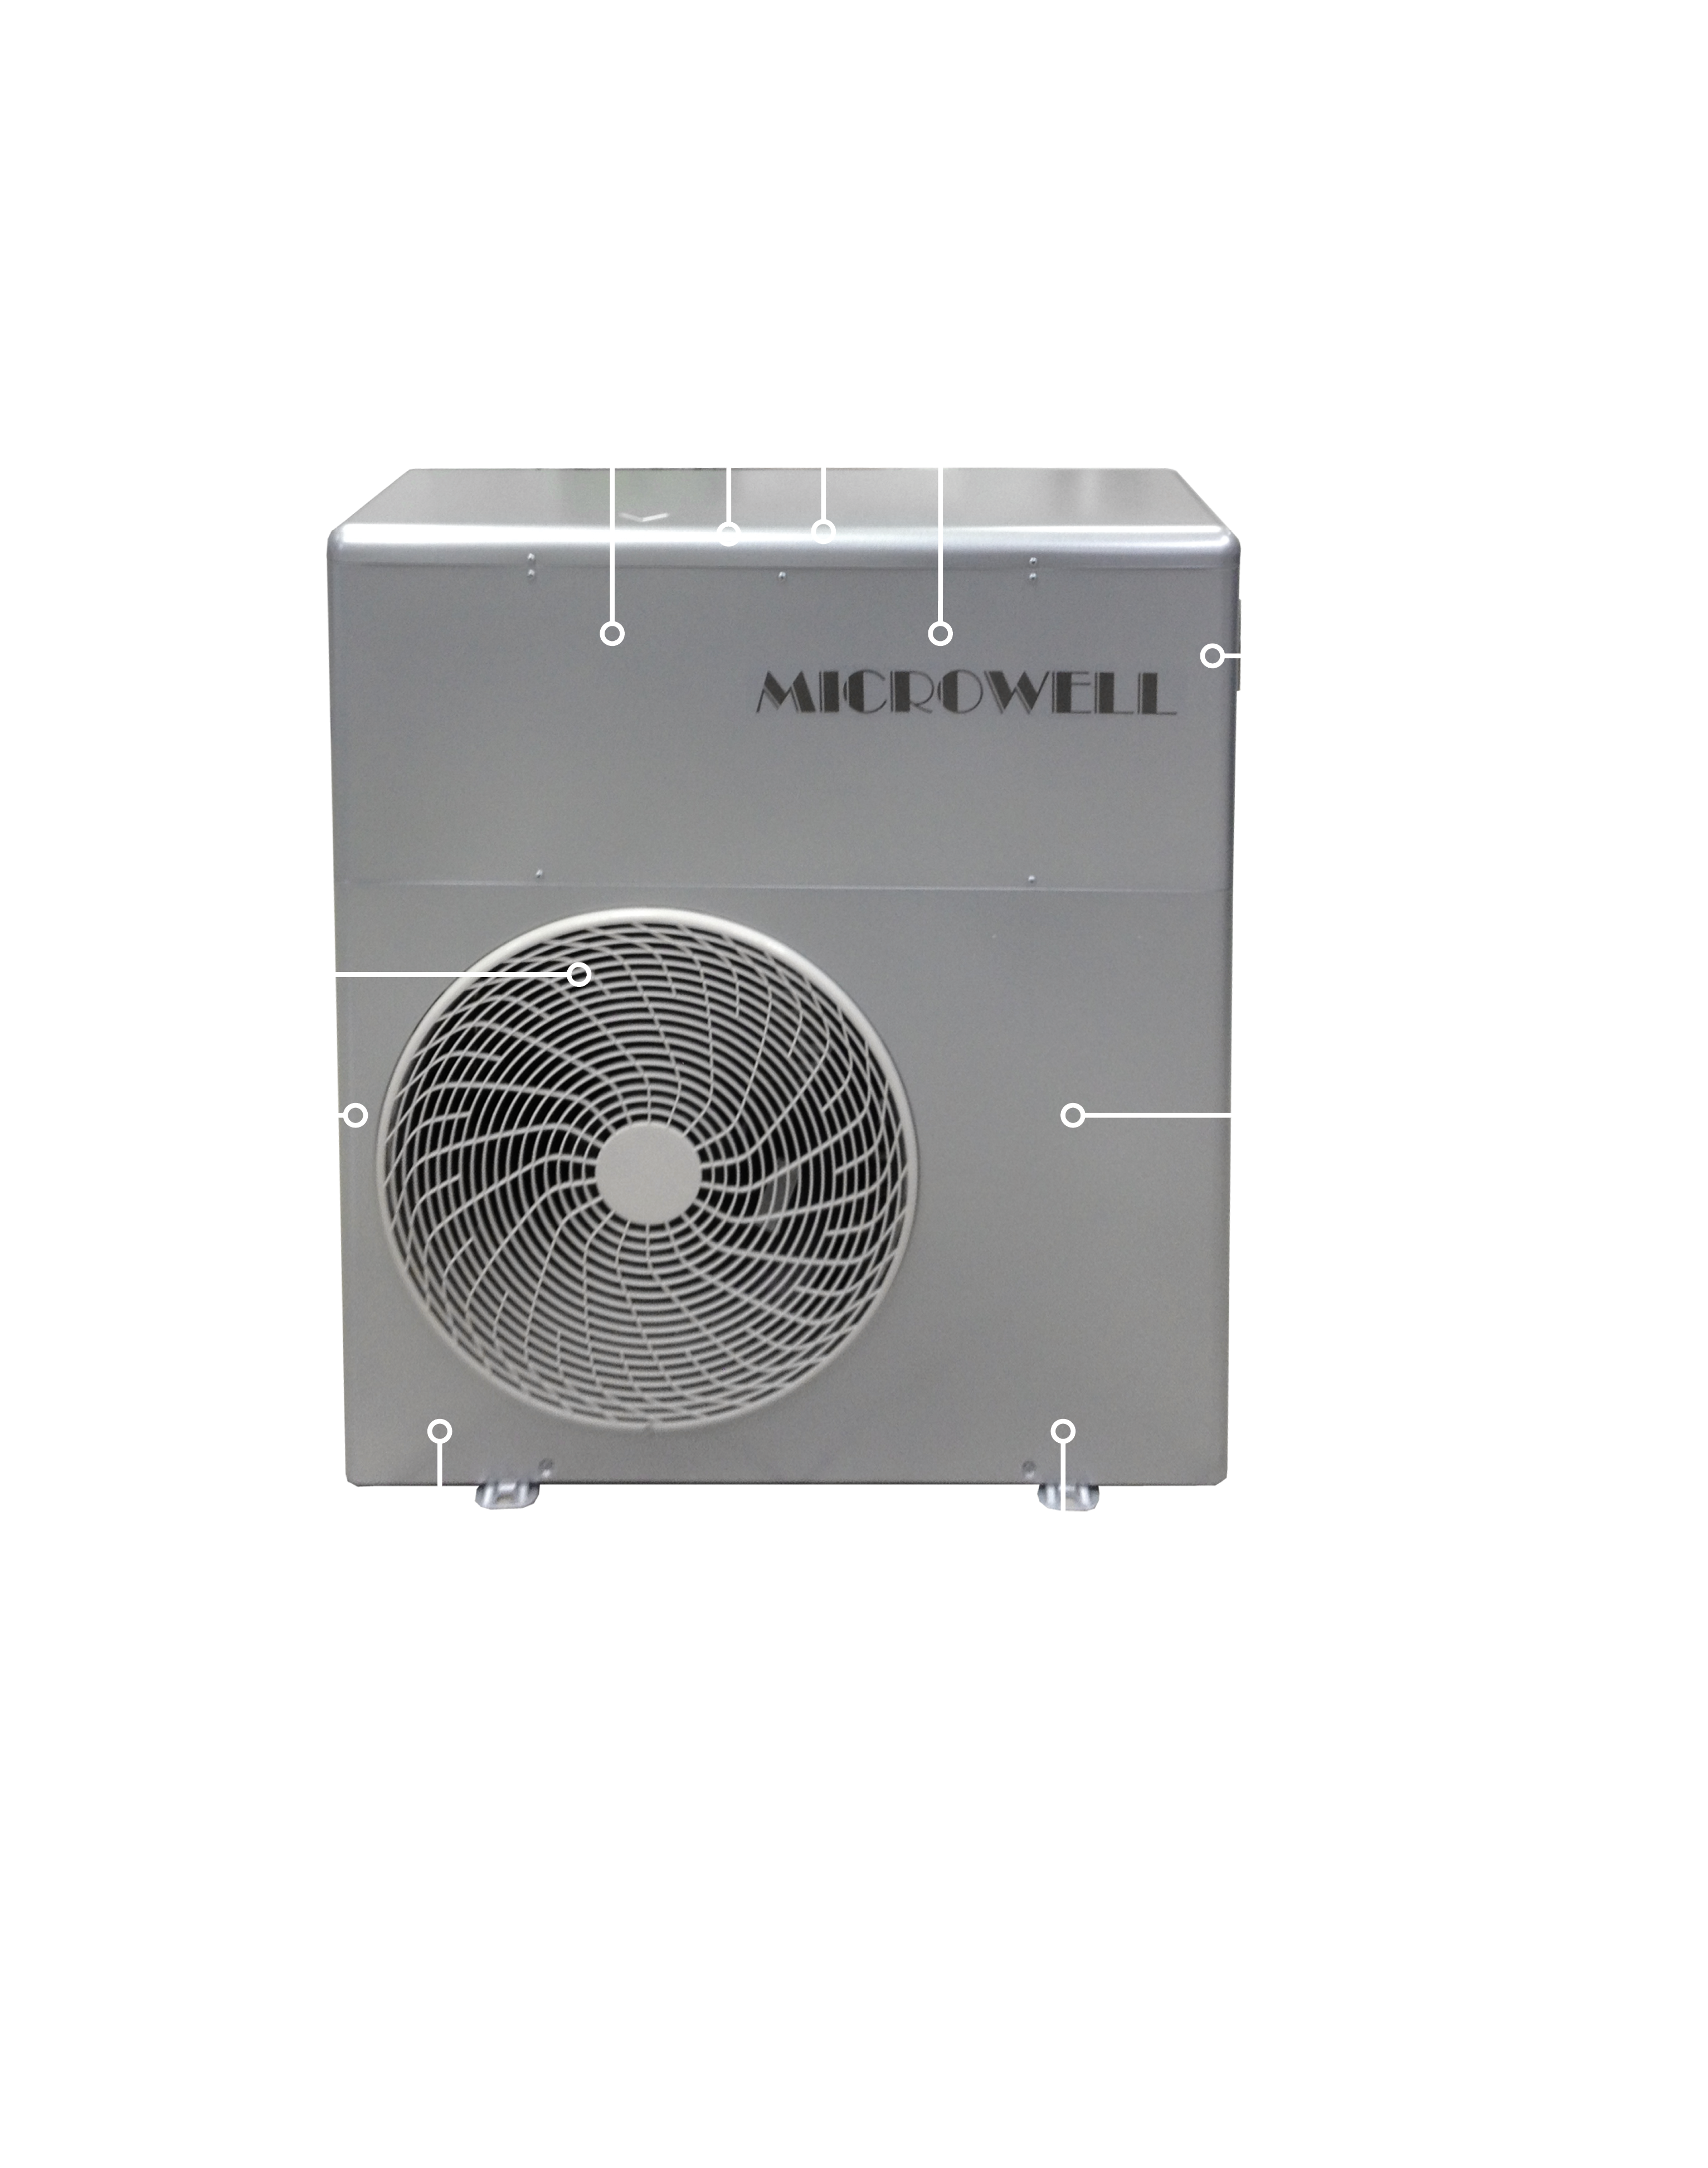 HP 1500 - Microwell